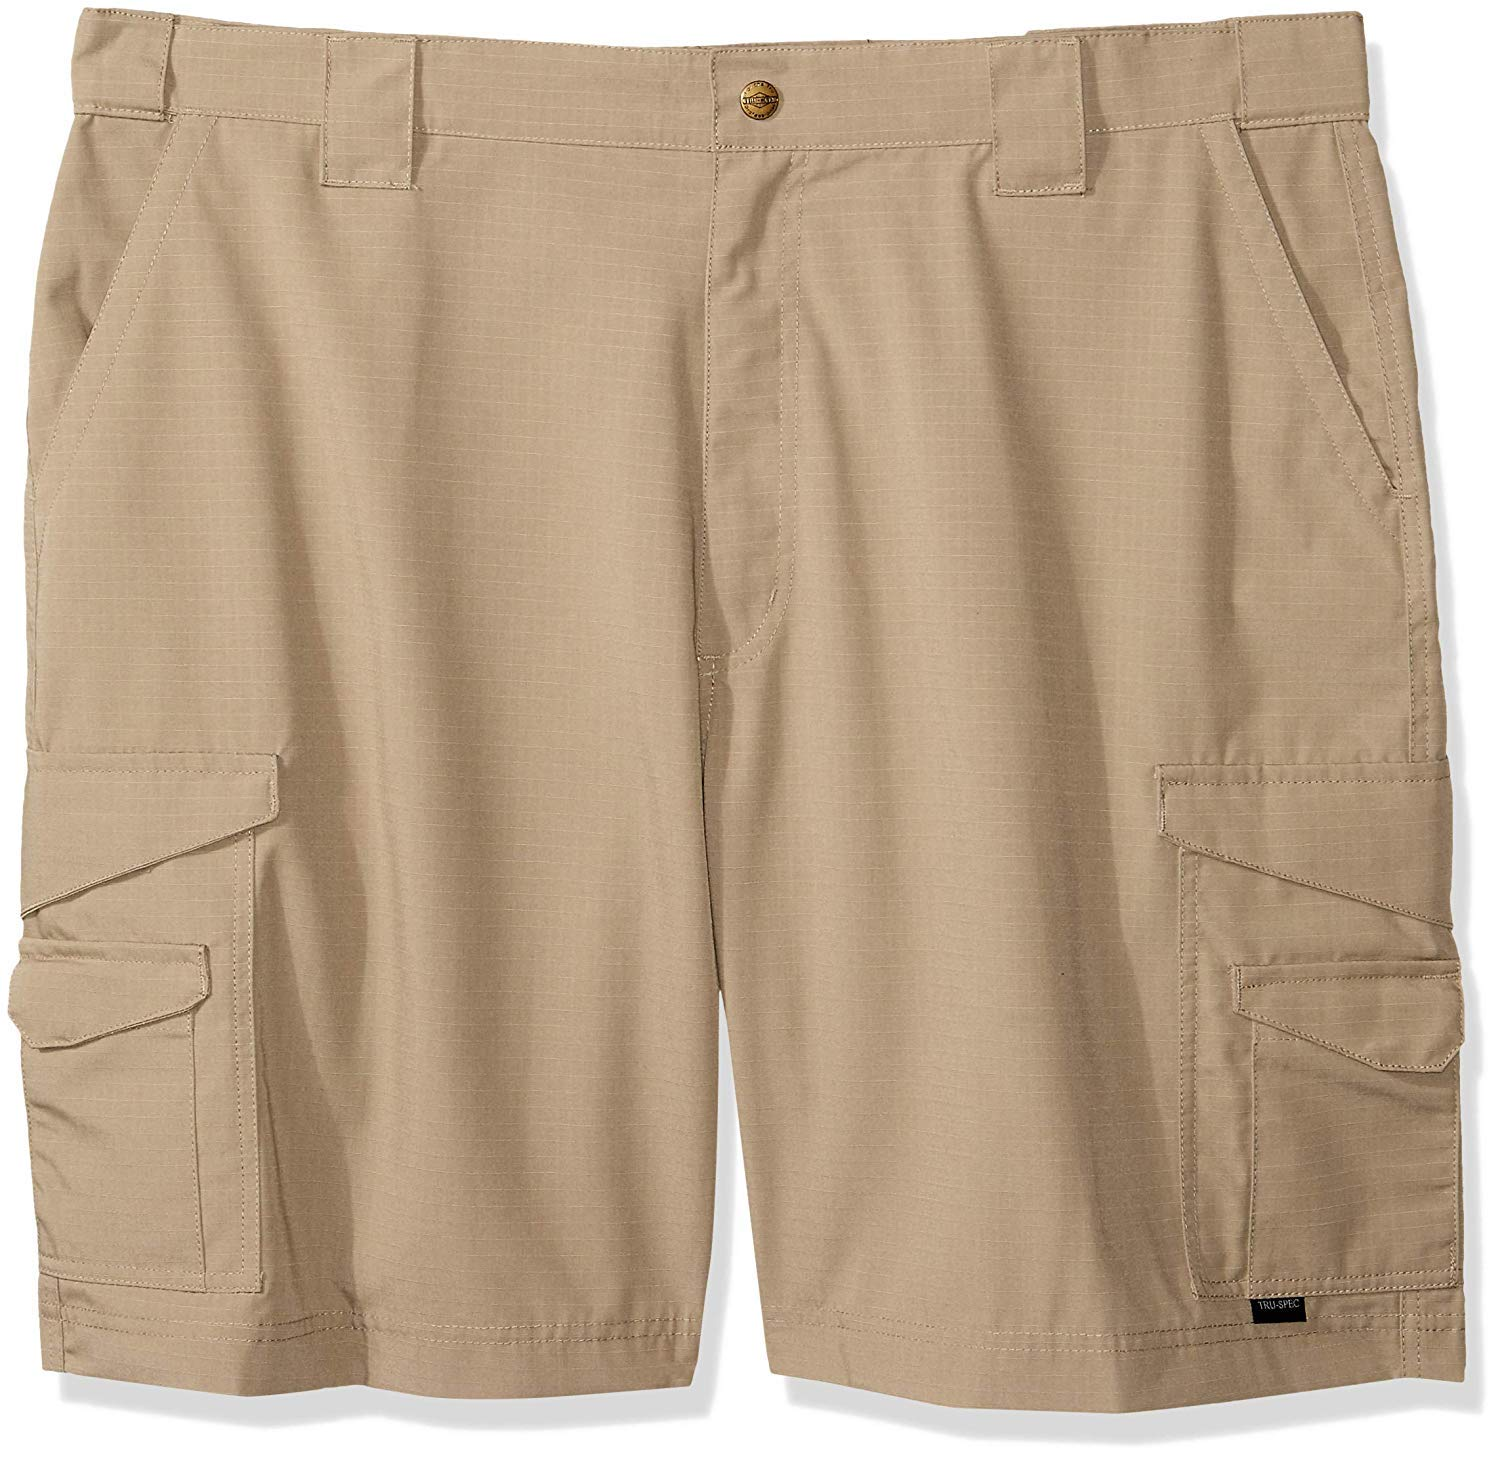 69d67b3f02 Best Rated in Men's Cargo Shorts & Helpful Customer Reviews - Amazon.com